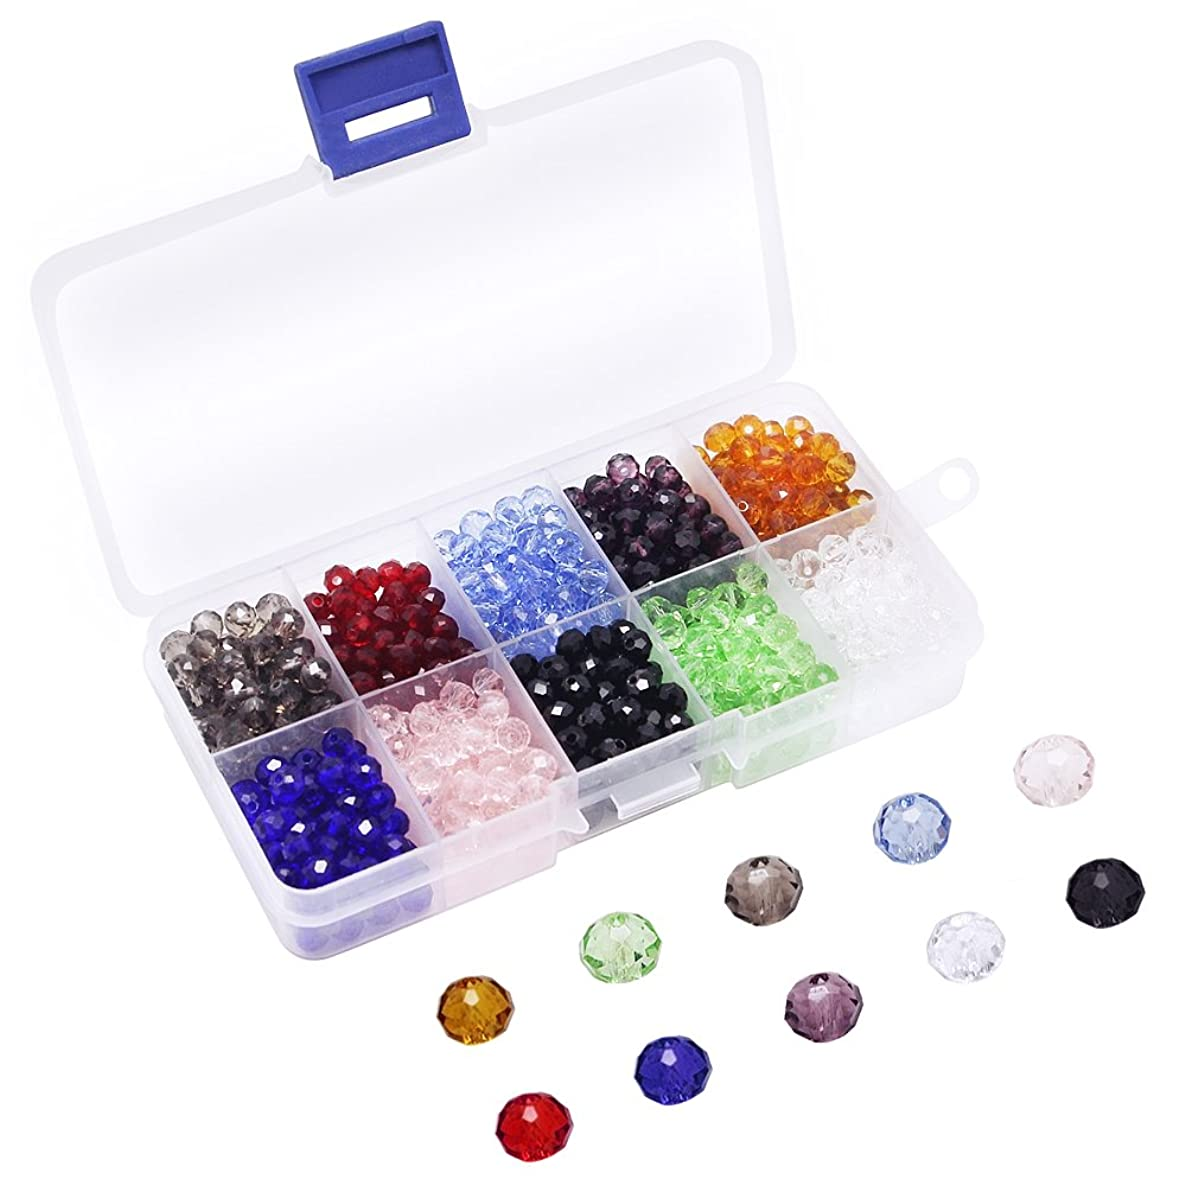 Dreamtop Multicolor 800 Pieces 6mm Faceted Crystal Glass Beads with Box for Jewelry Making DIY Crafts